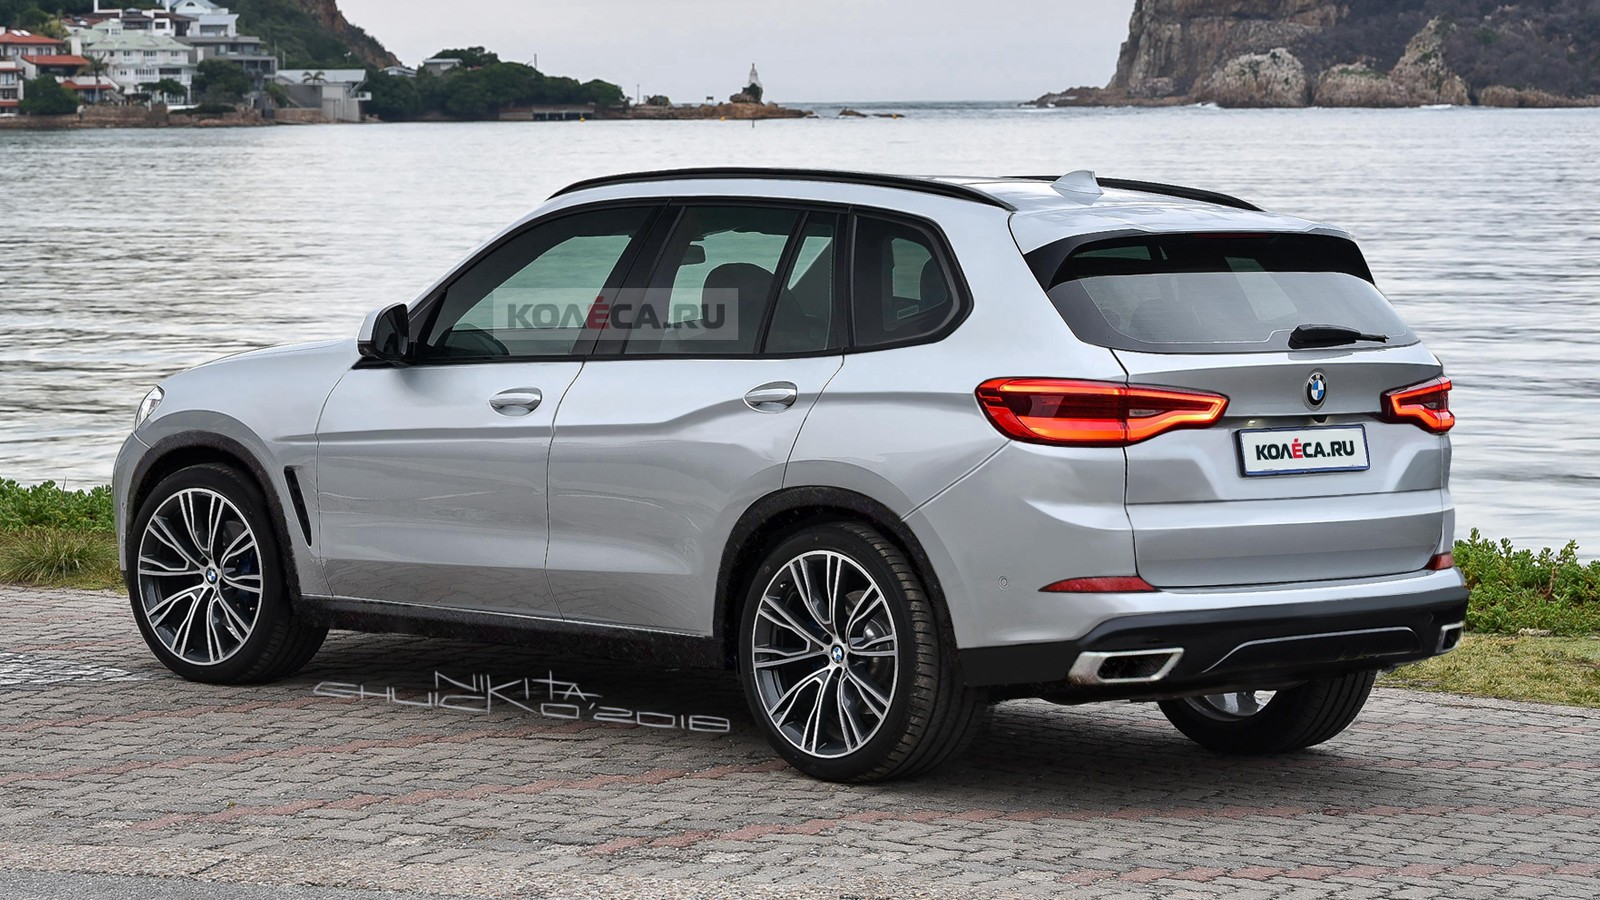 BMW-X5-new-rear2-1600x900[1]